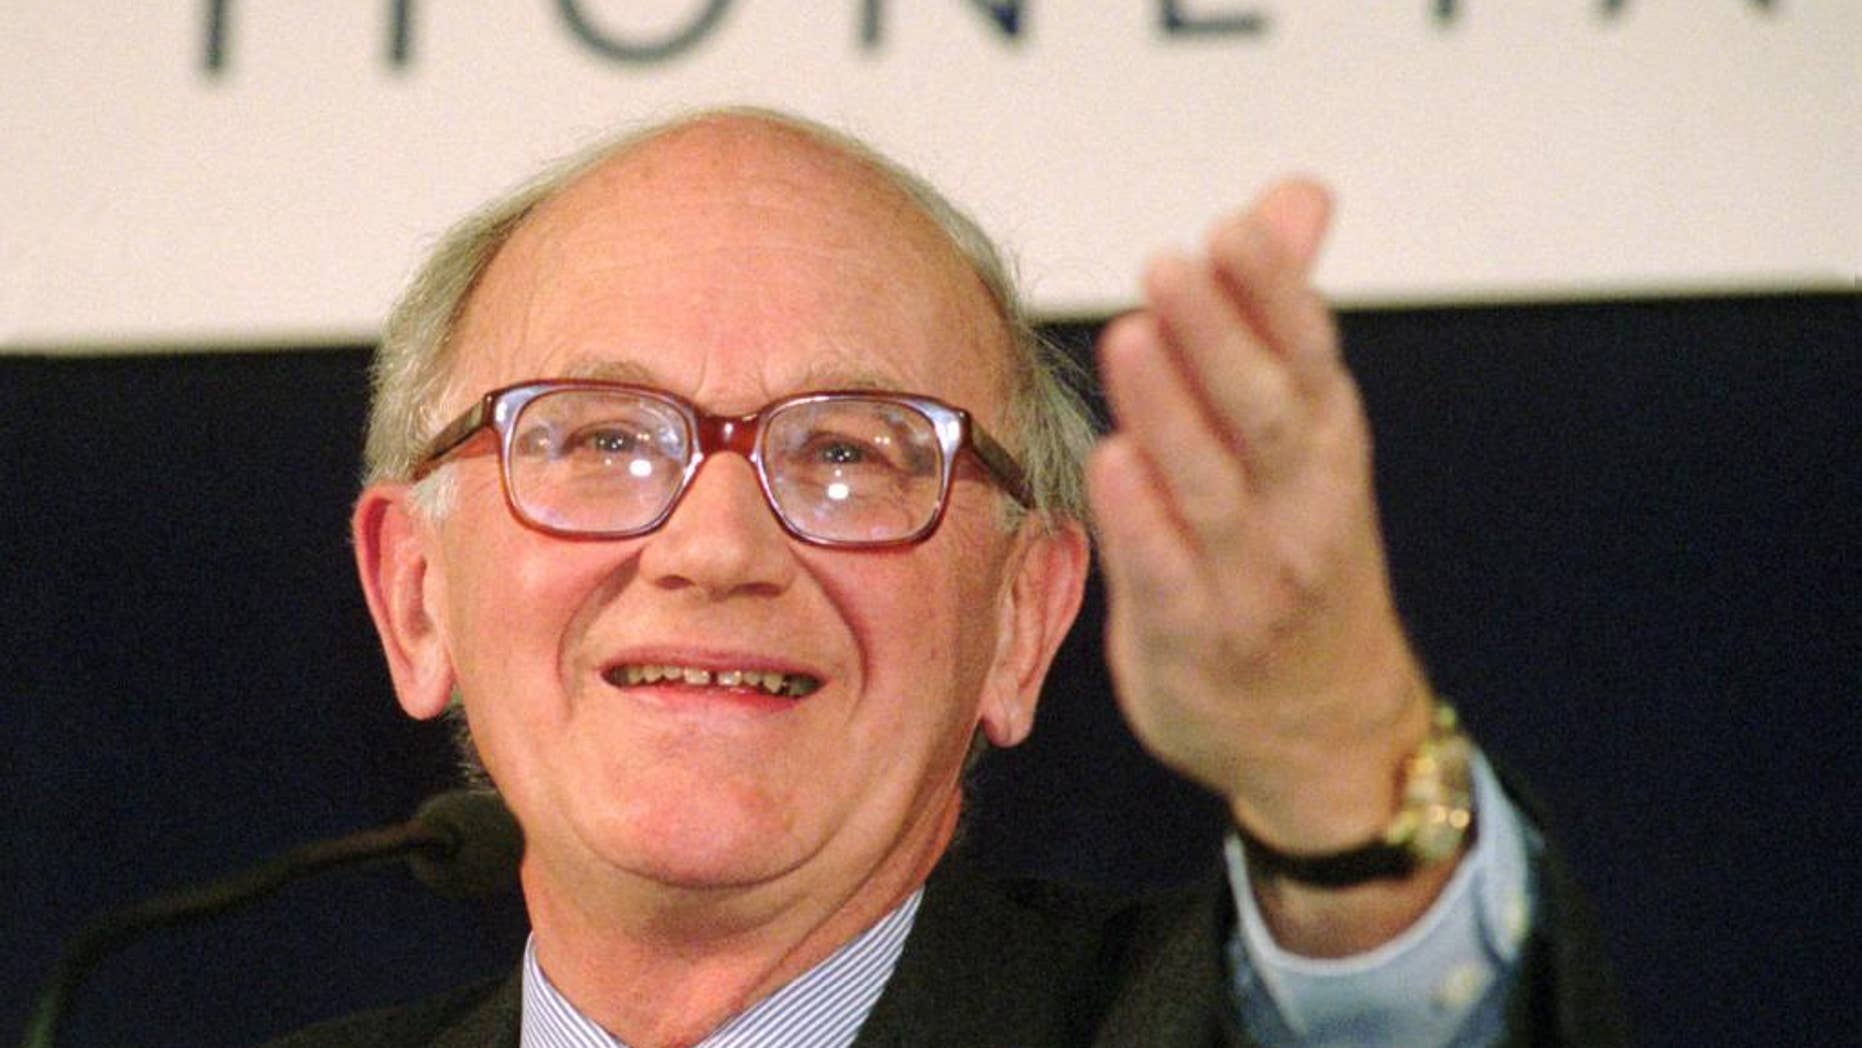 FILE - In this Jan. 10, 1997 file photo, President of the European Monetary Institute (EMI), Alexandre Lamfalussy attends a press conference in Frankfurt. Lamfalussy, who died on Monday, May 11, 2015 at the age of 86, headed the Frankfurt-based European Monetary Institute from 1994-97, laying the groundwork for the introduction of the euro and a supra-national central bank to manage the currency. (AP Photo/Bernd Kammerer, File)